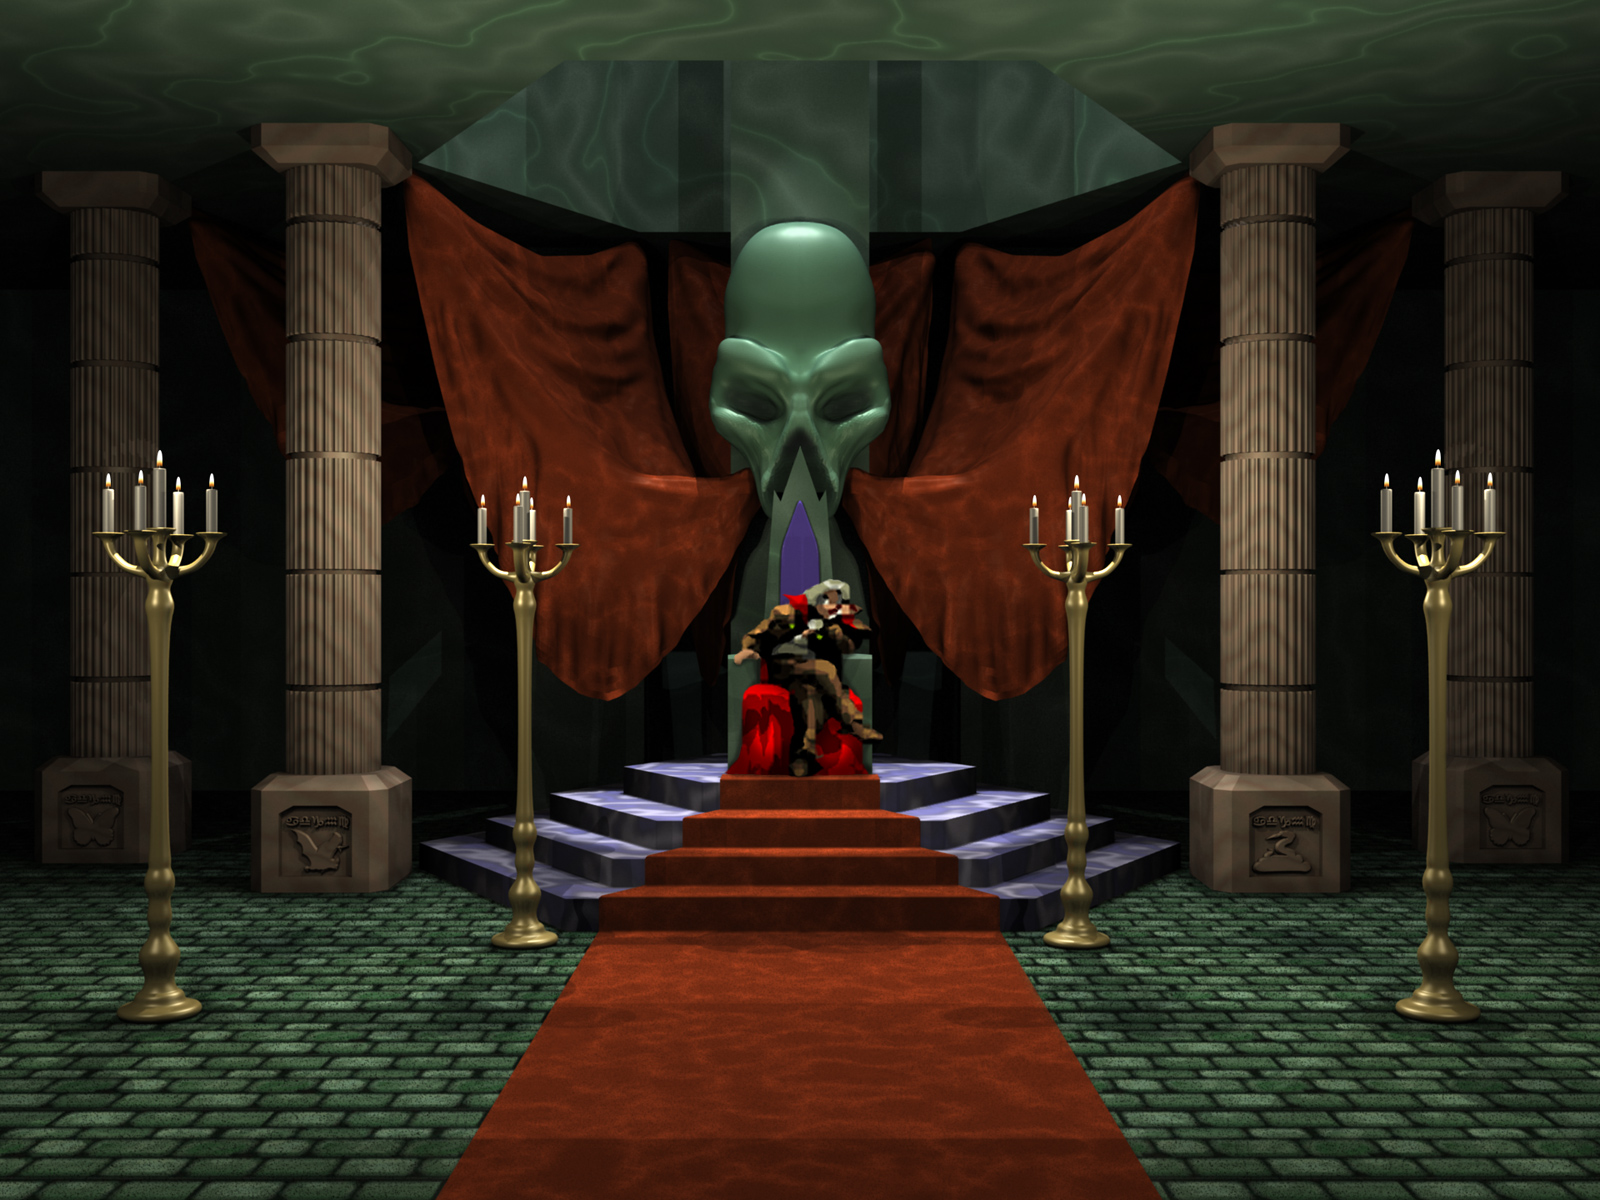 Picture Of Room Castlevania Symphony Of The Night Psx Desktop Wallpapers